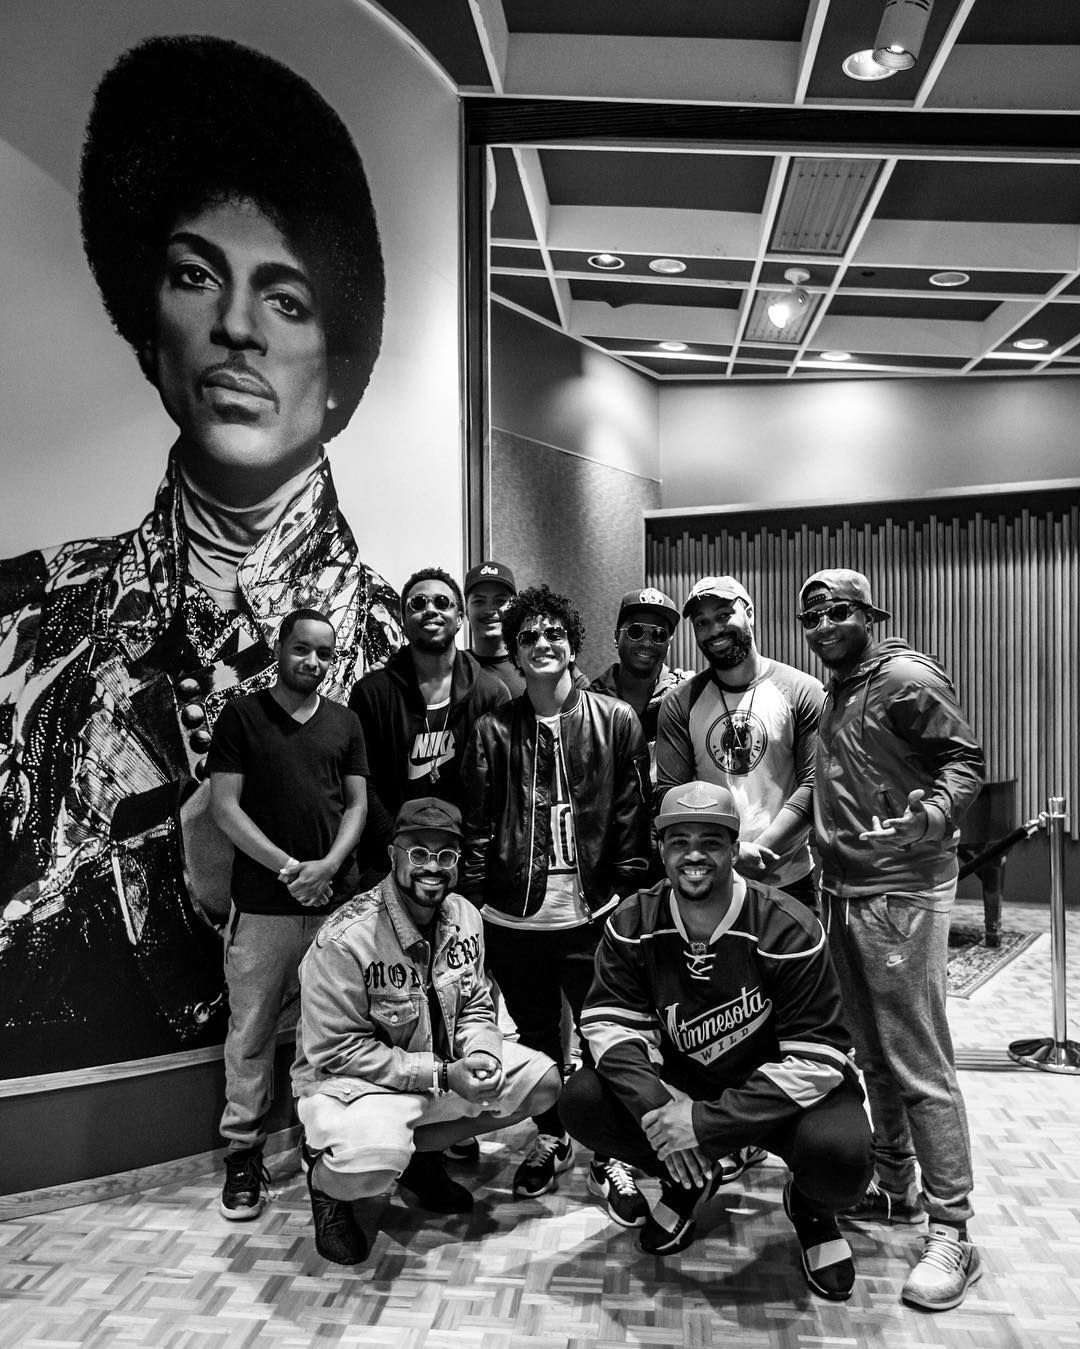 View bigger bruno mars ethnicity for android screenshot - Bruno Mars And The Hooligans At Paisley Park